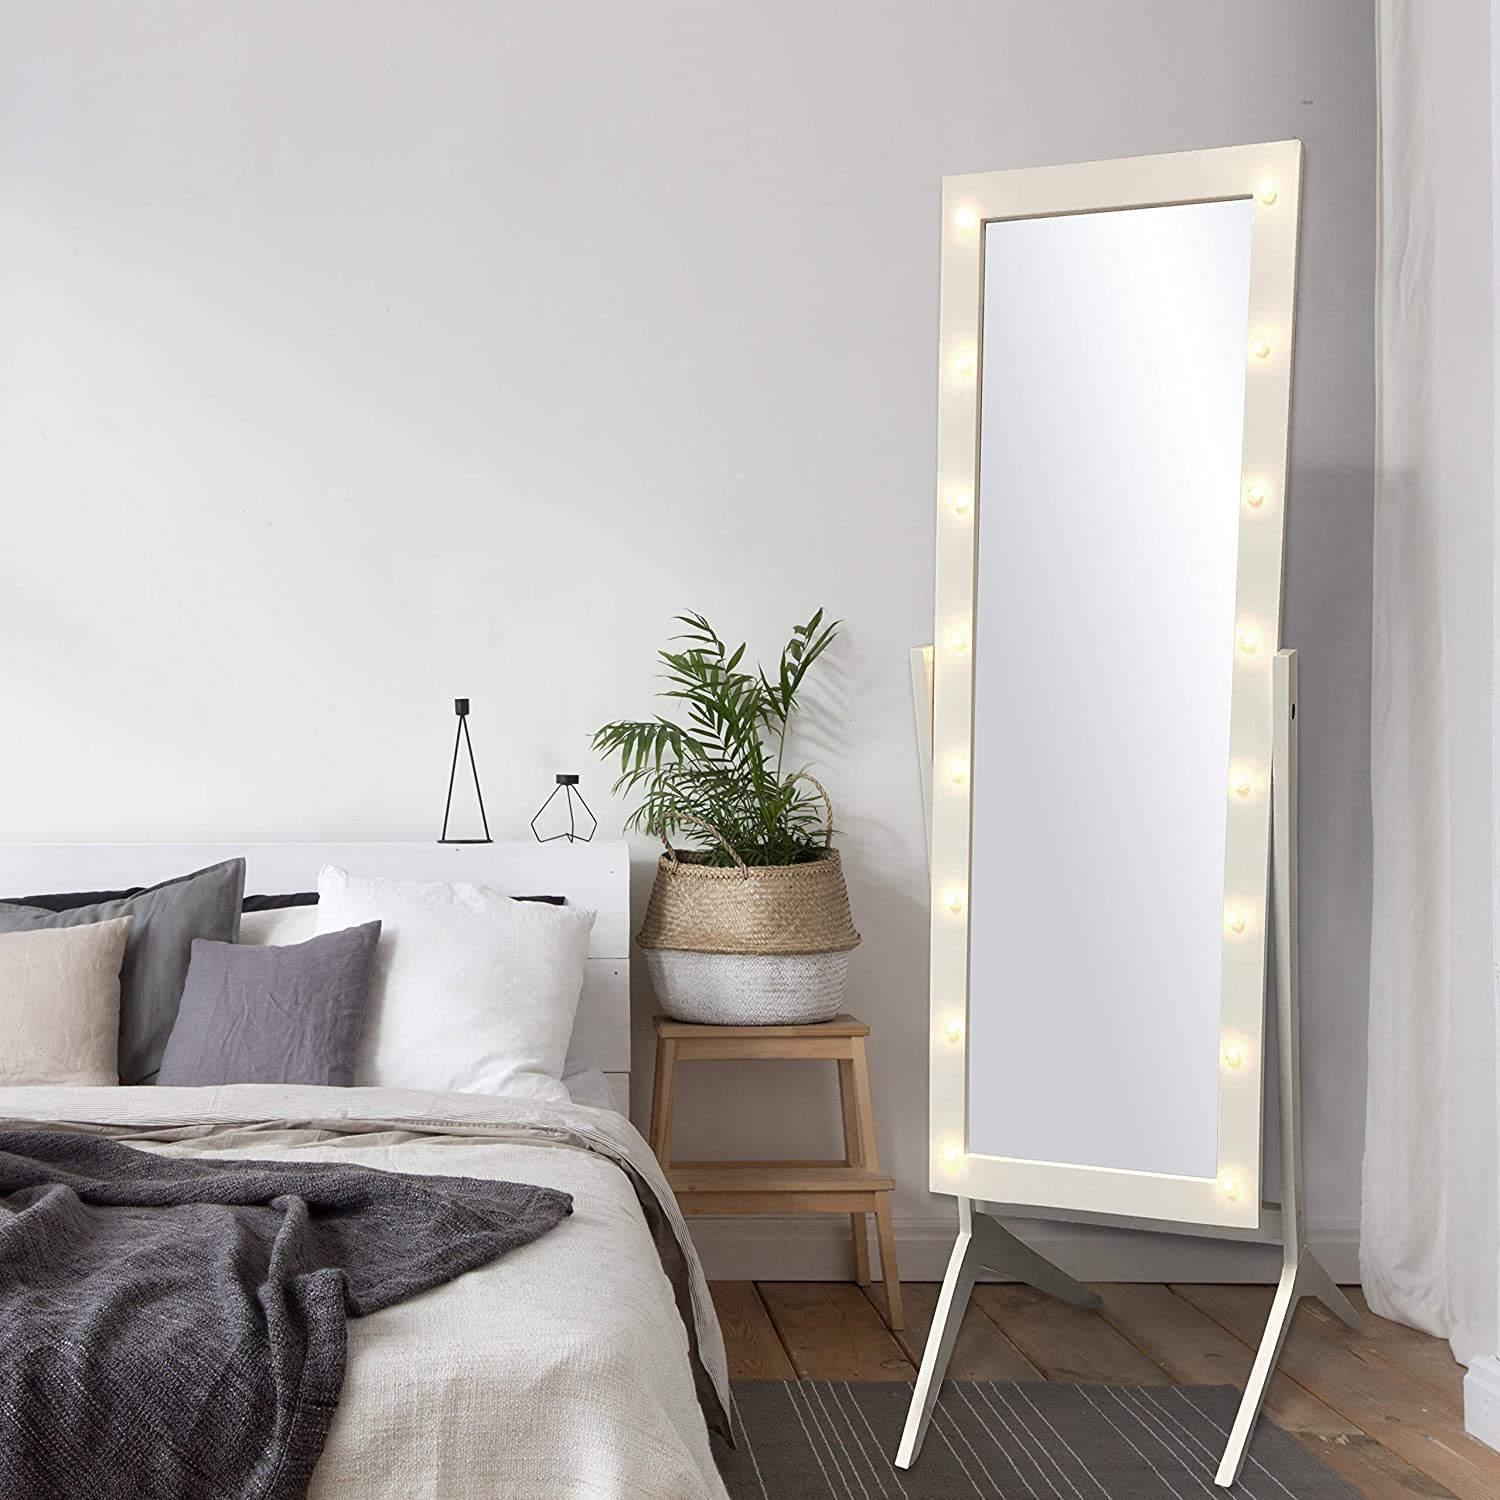 Amazon Com Ehomeproducts White Finish Led Lights Wooden Cheval Bedroom Floor Mirror Stand Hollywood Style Makeup Mirror Furniture Decor